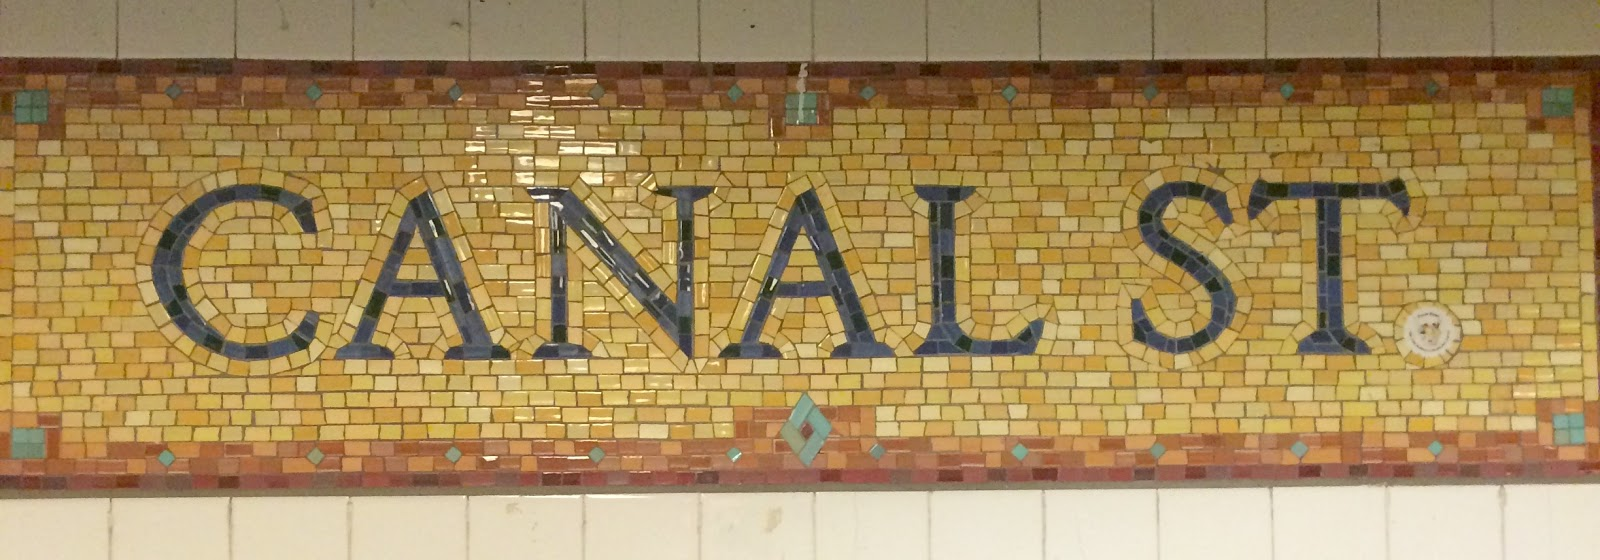 The 10 Year Plan: Touring NYC: The NYC Subway Art Tour (Part 3 of 6)